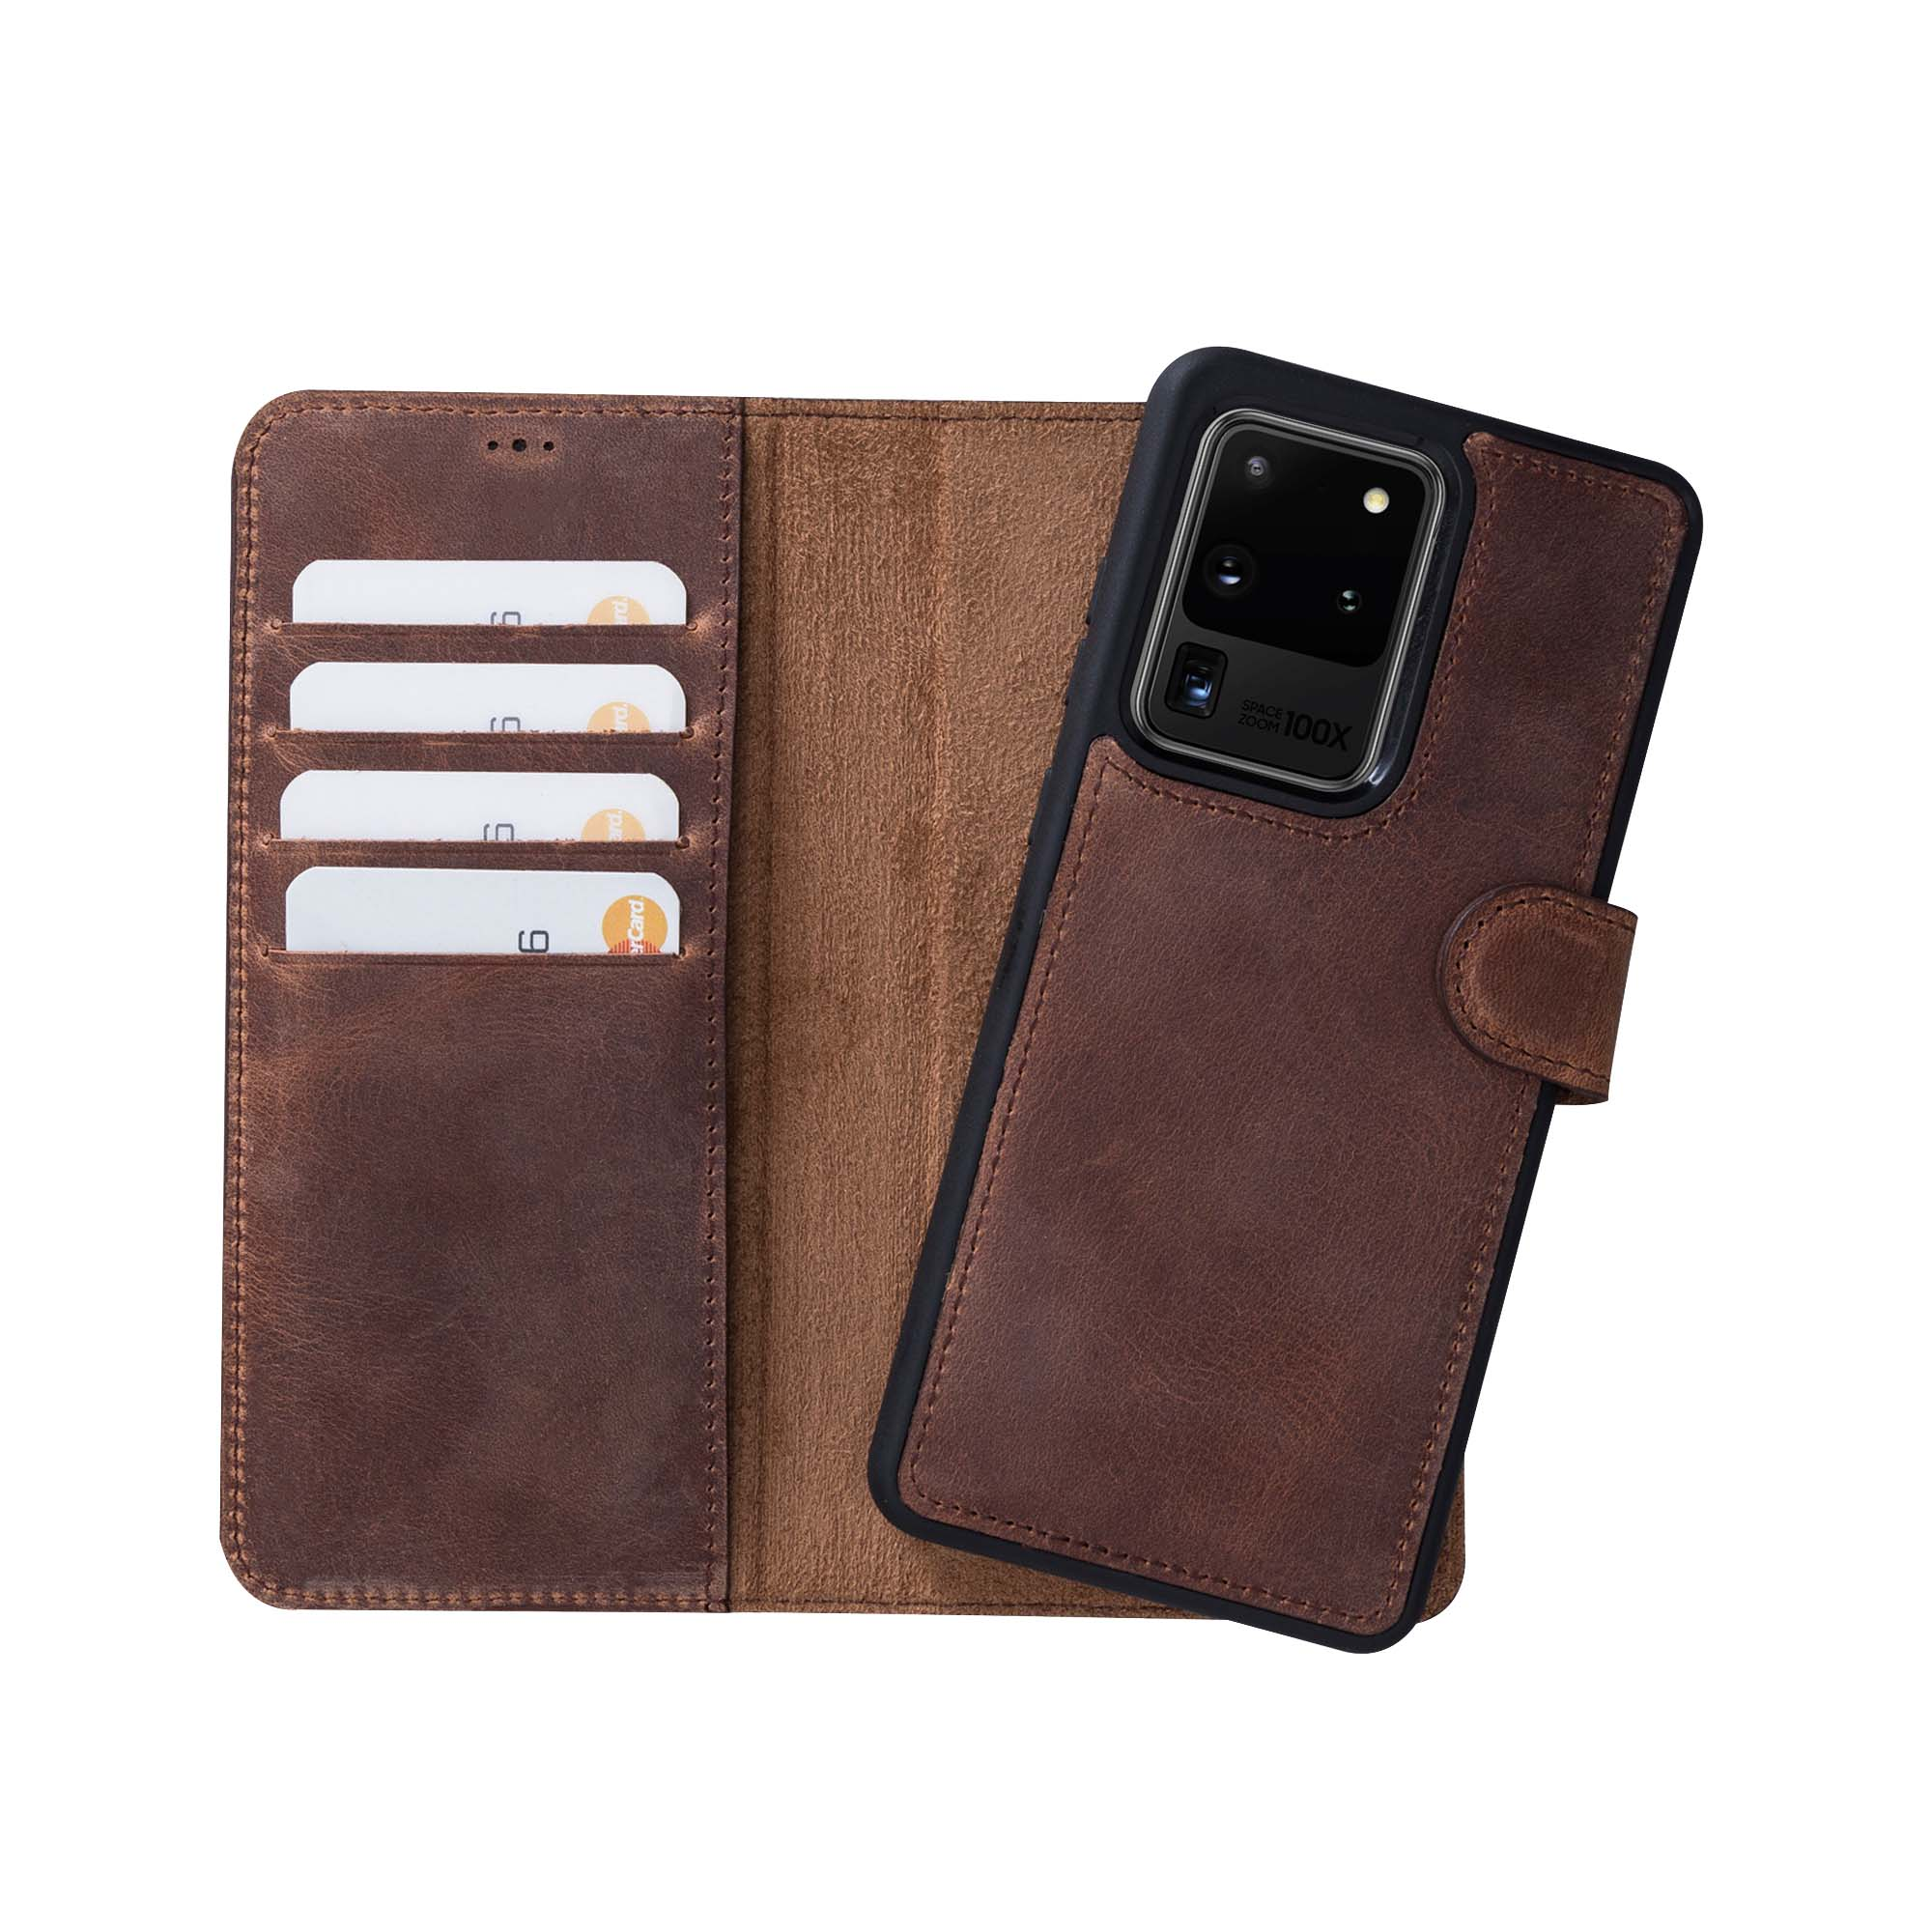 "Magic Magnetic Detachable Leather Wallet Case for Samsung Galaxy S20 Ultra (6.9"") - BROWN"